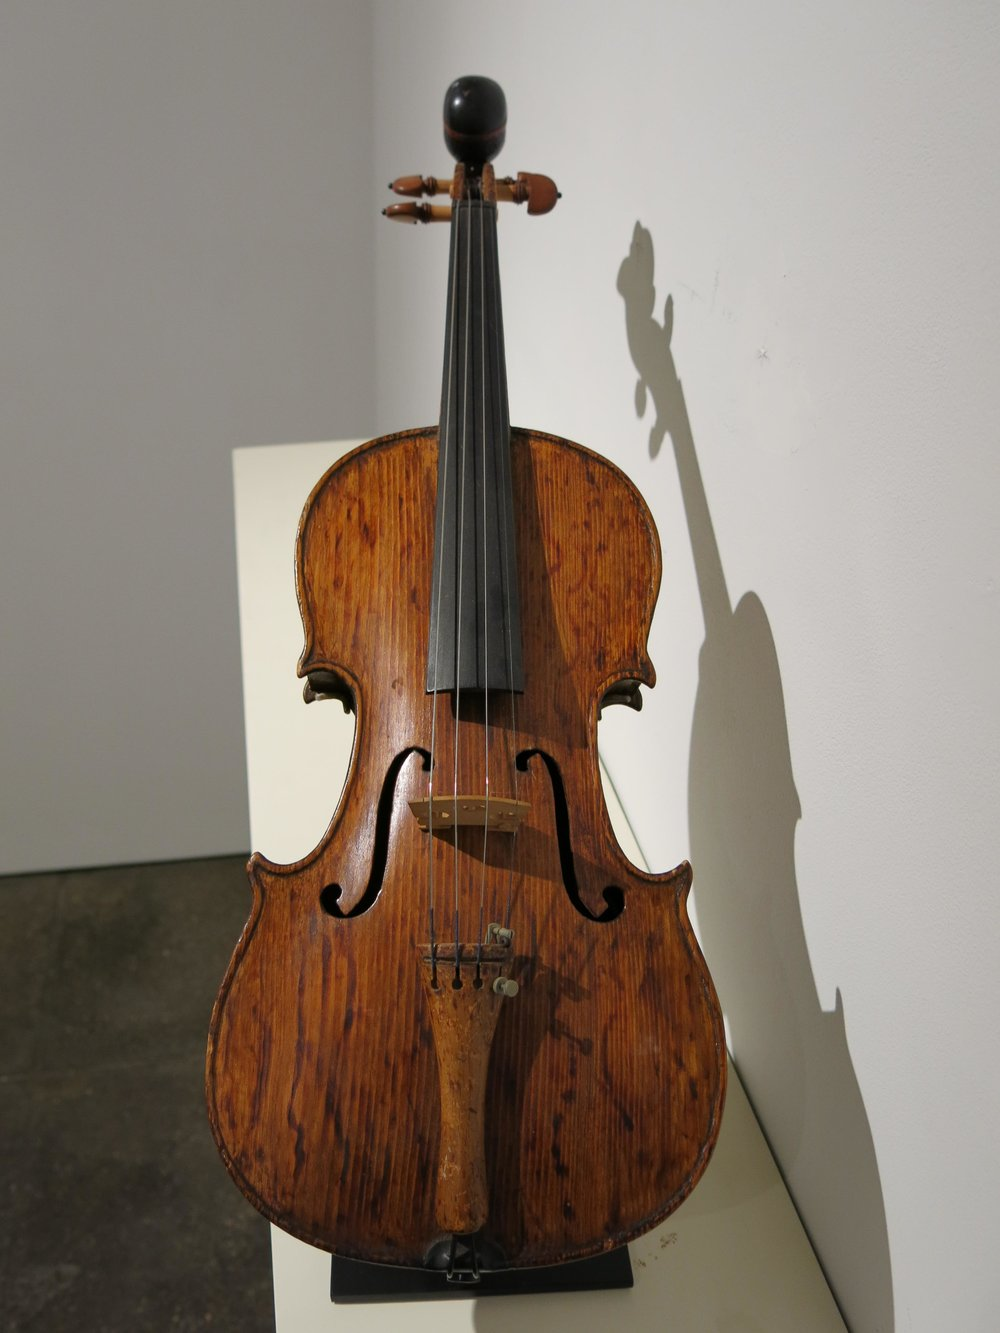 Edmond Martin,  Violin,  early 20th c., wood, strings, 24h x 8w x 3d in.